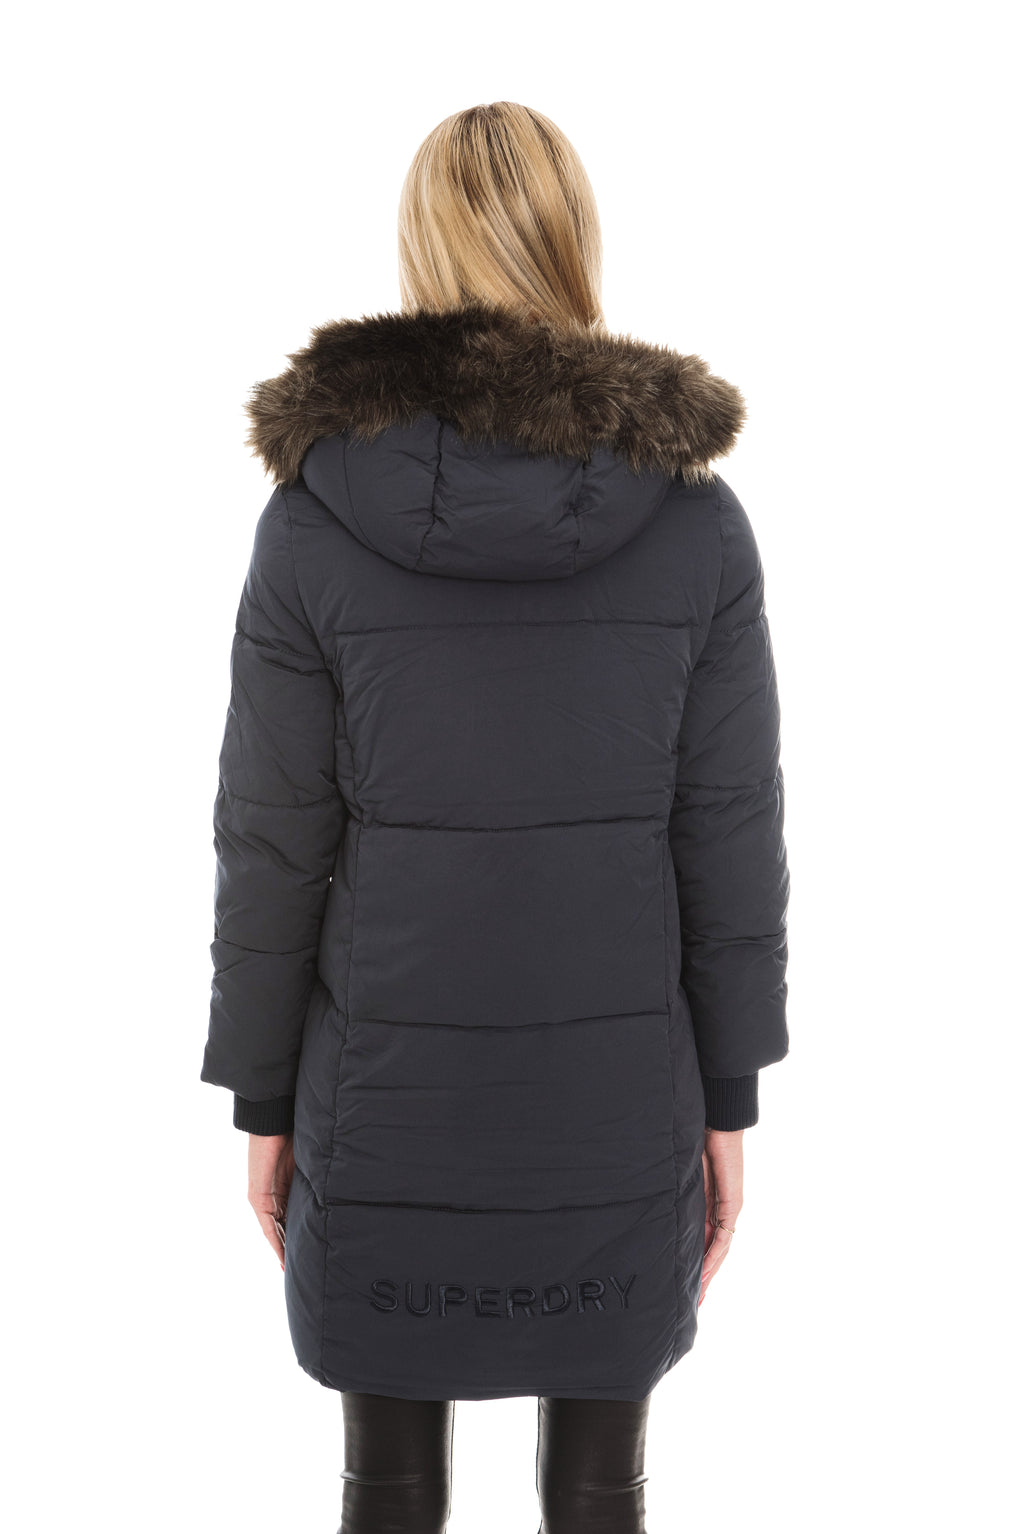 SUPERDRY COCOON PARKA JACKET - SUPER DARK NAVY